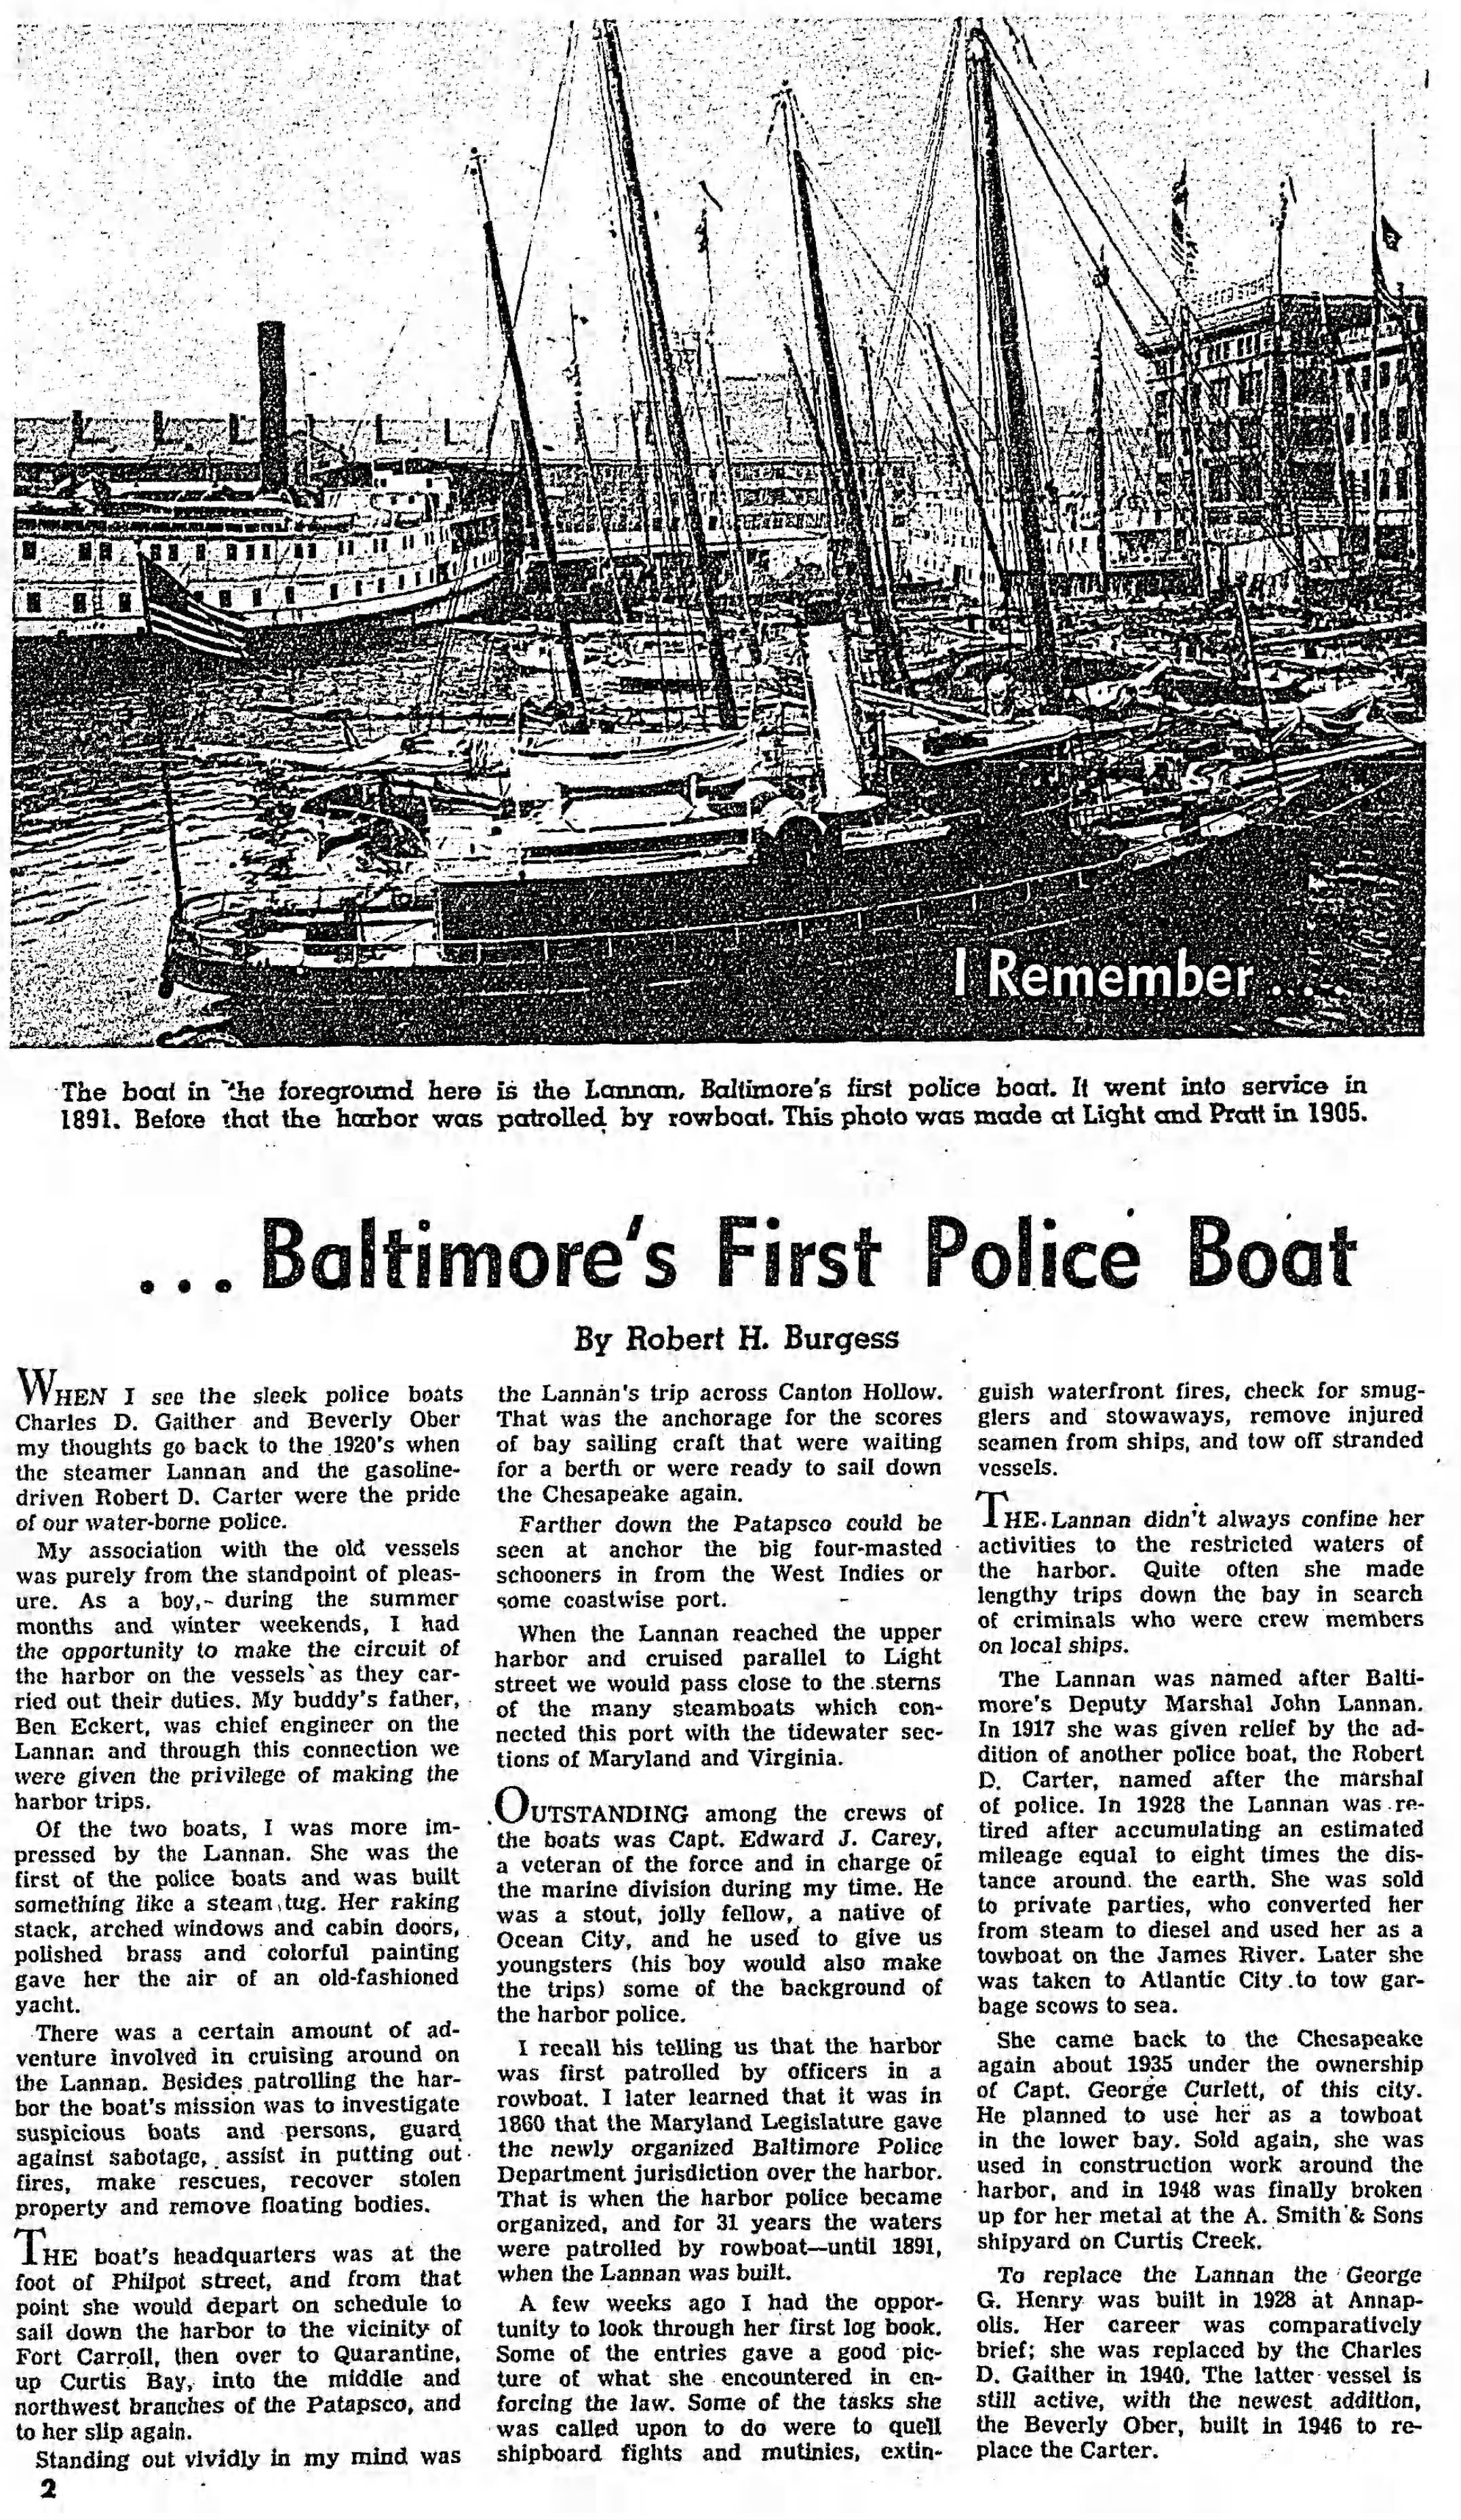 The_Baltimore_Sun_Sun__Feb_23__1958_